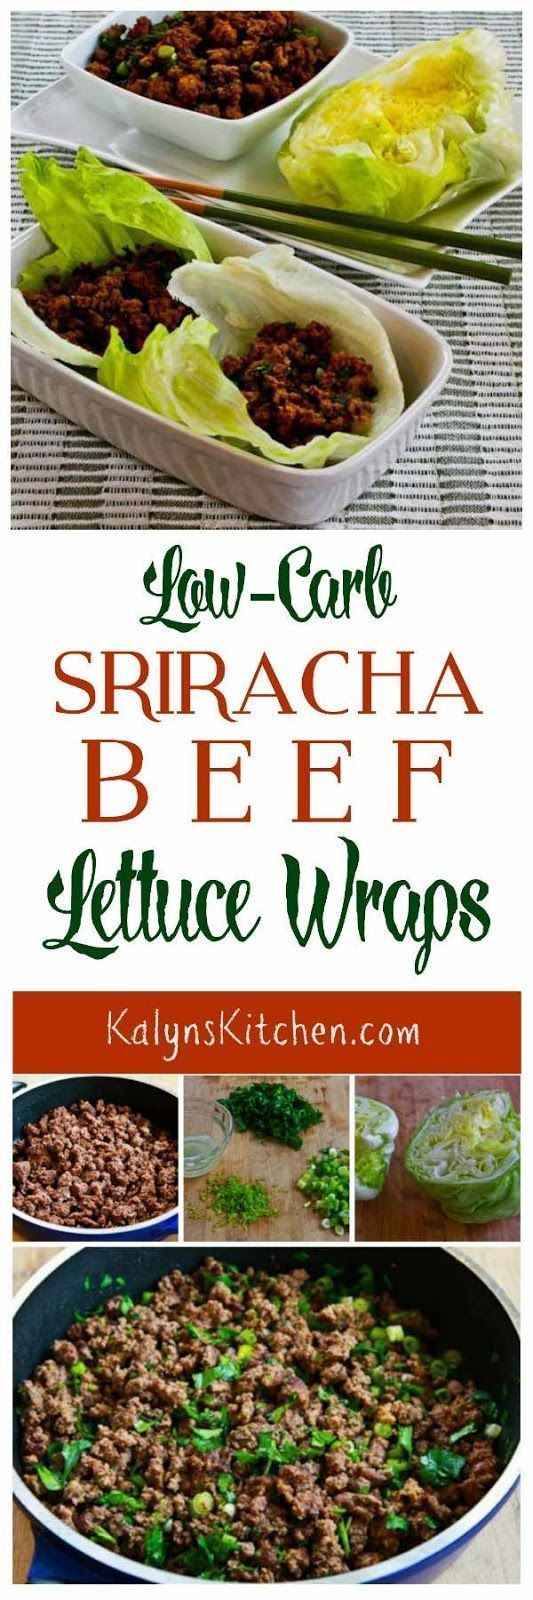 I love love love lettuce wraps and these Low-Carb Sriracha Beef Lettuce Wraps are one of my favorites. This low-carb recipe is also gluten-free dairy-free and South Beach Diet Phase One. [found onI love love love lettuce wraps and these Low-Carb Sriracha Beef Lettuce Wraps are one of my favorites. This low-carb recipe is also gluten-free dairy-free and South Beach Diet Phase One. [found onKalynsKitchen]